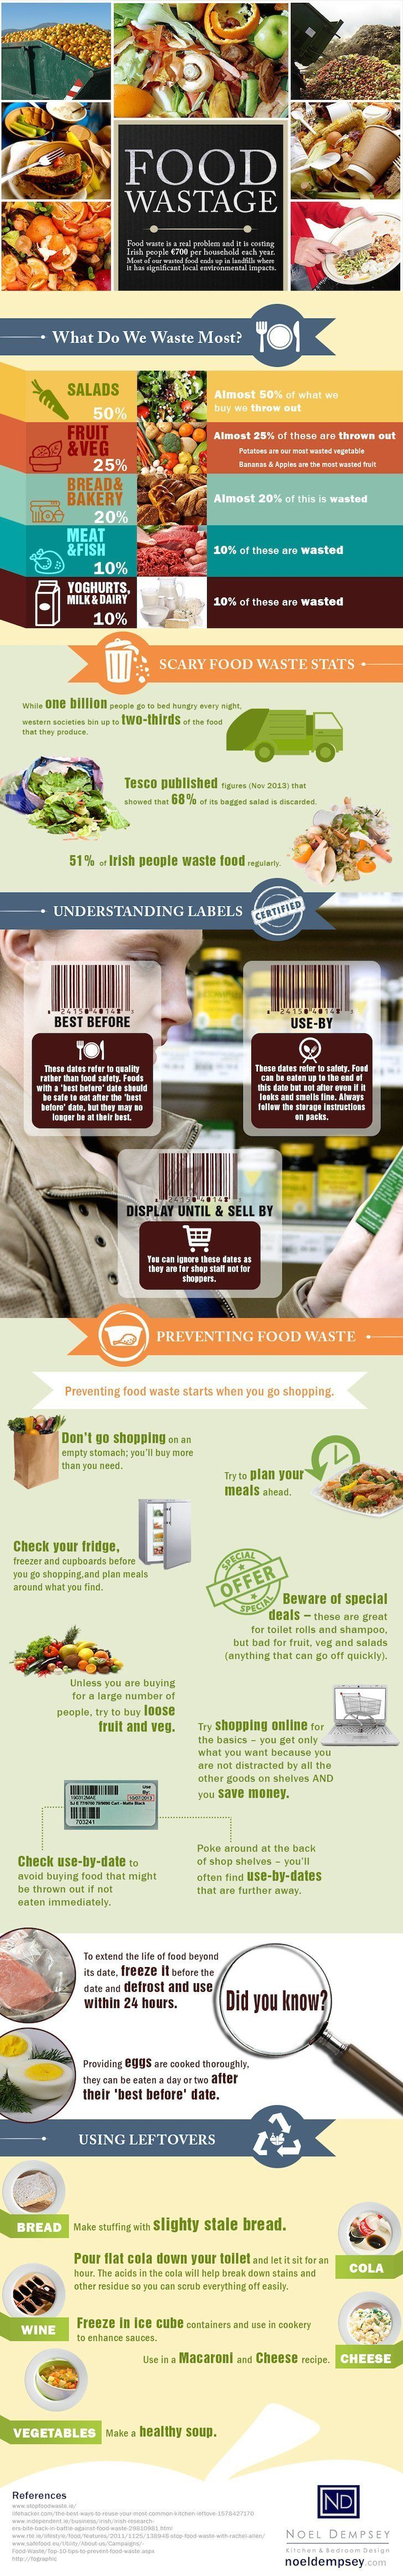 food waste, obesity, infographic, user generated content, reader submissions, food thrown away, wasting food, infographic about food waste, ireland food waste, UK food waste, world hunger,